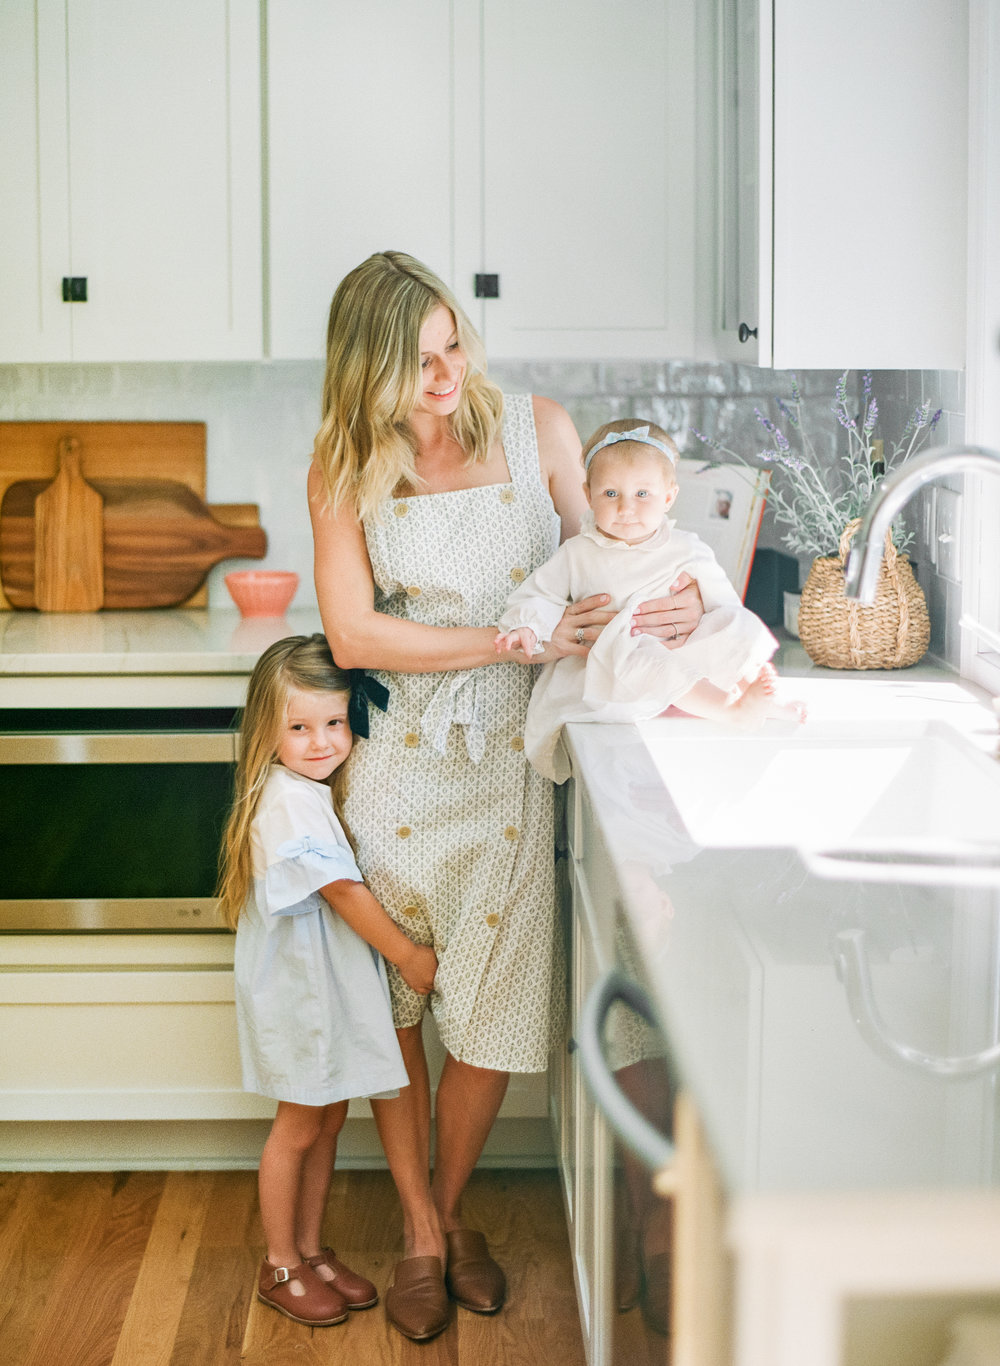 raleigh-family-film-photographer-lifestyle-home